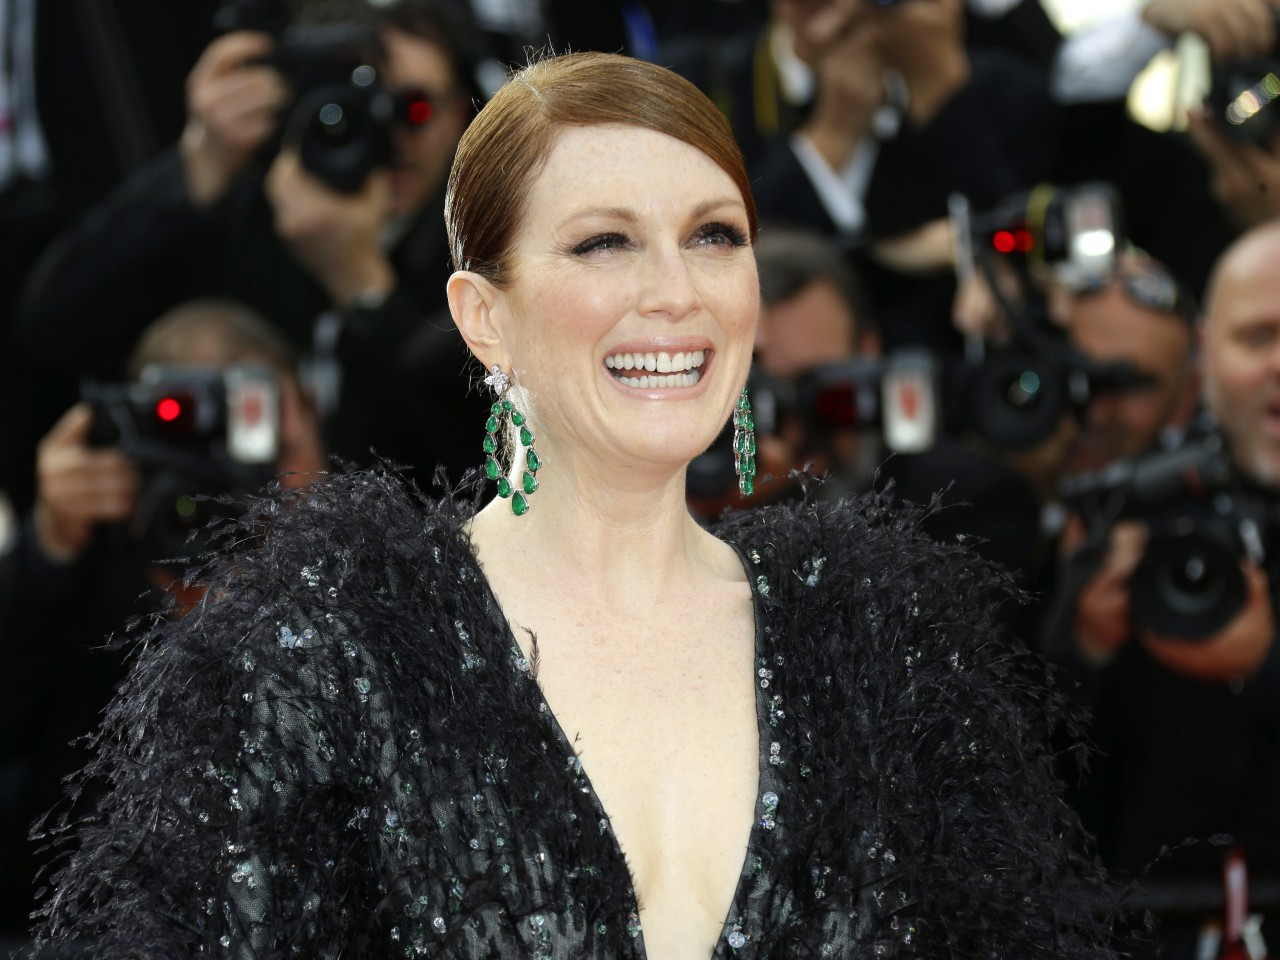 julianne moore slams the calcified gun lobby for being out of enlargejulianne